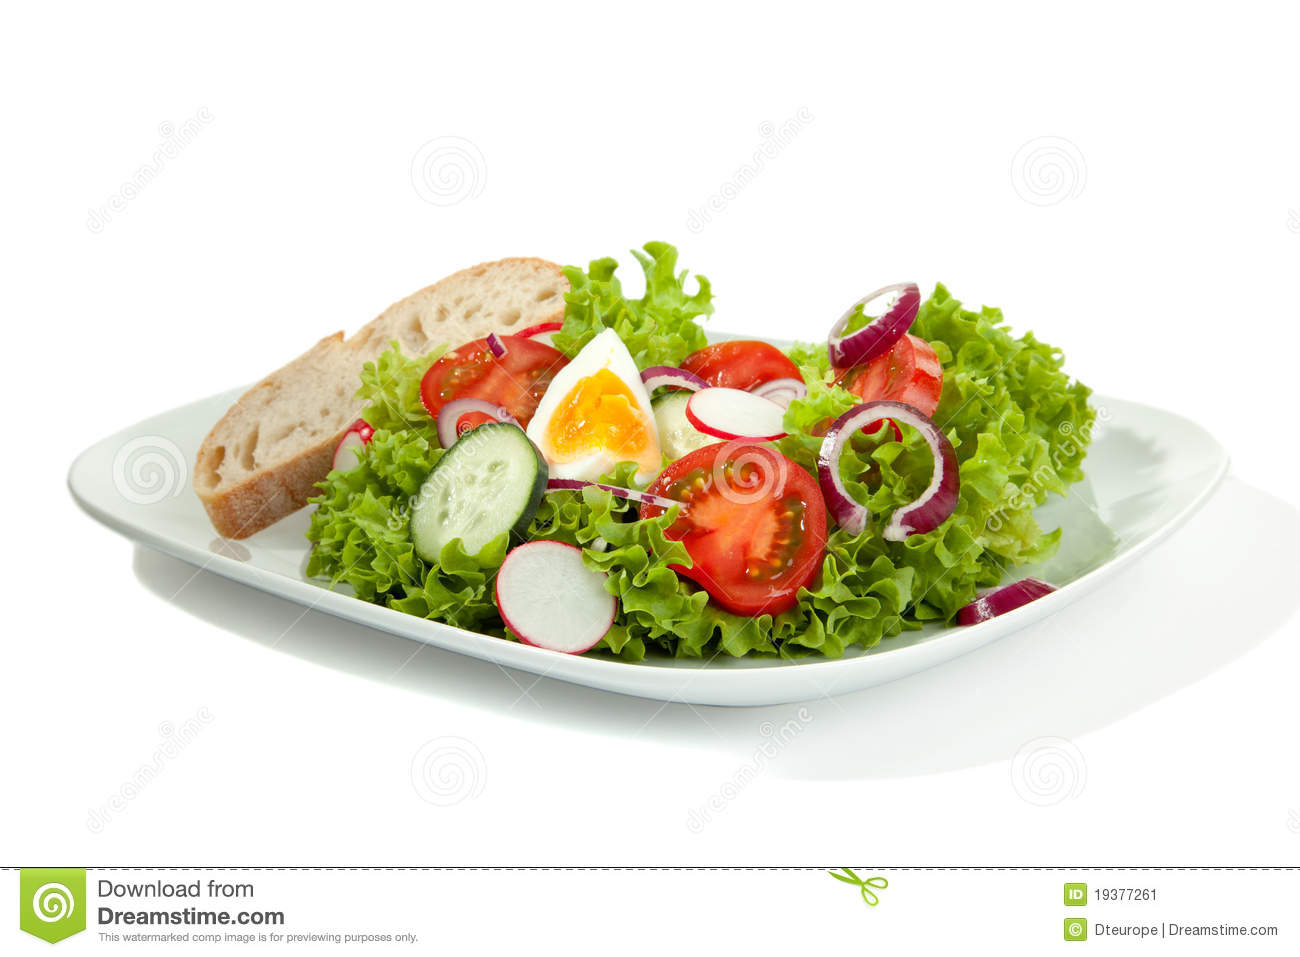 Complete Salad Plate Stock Image - Image: 19377261